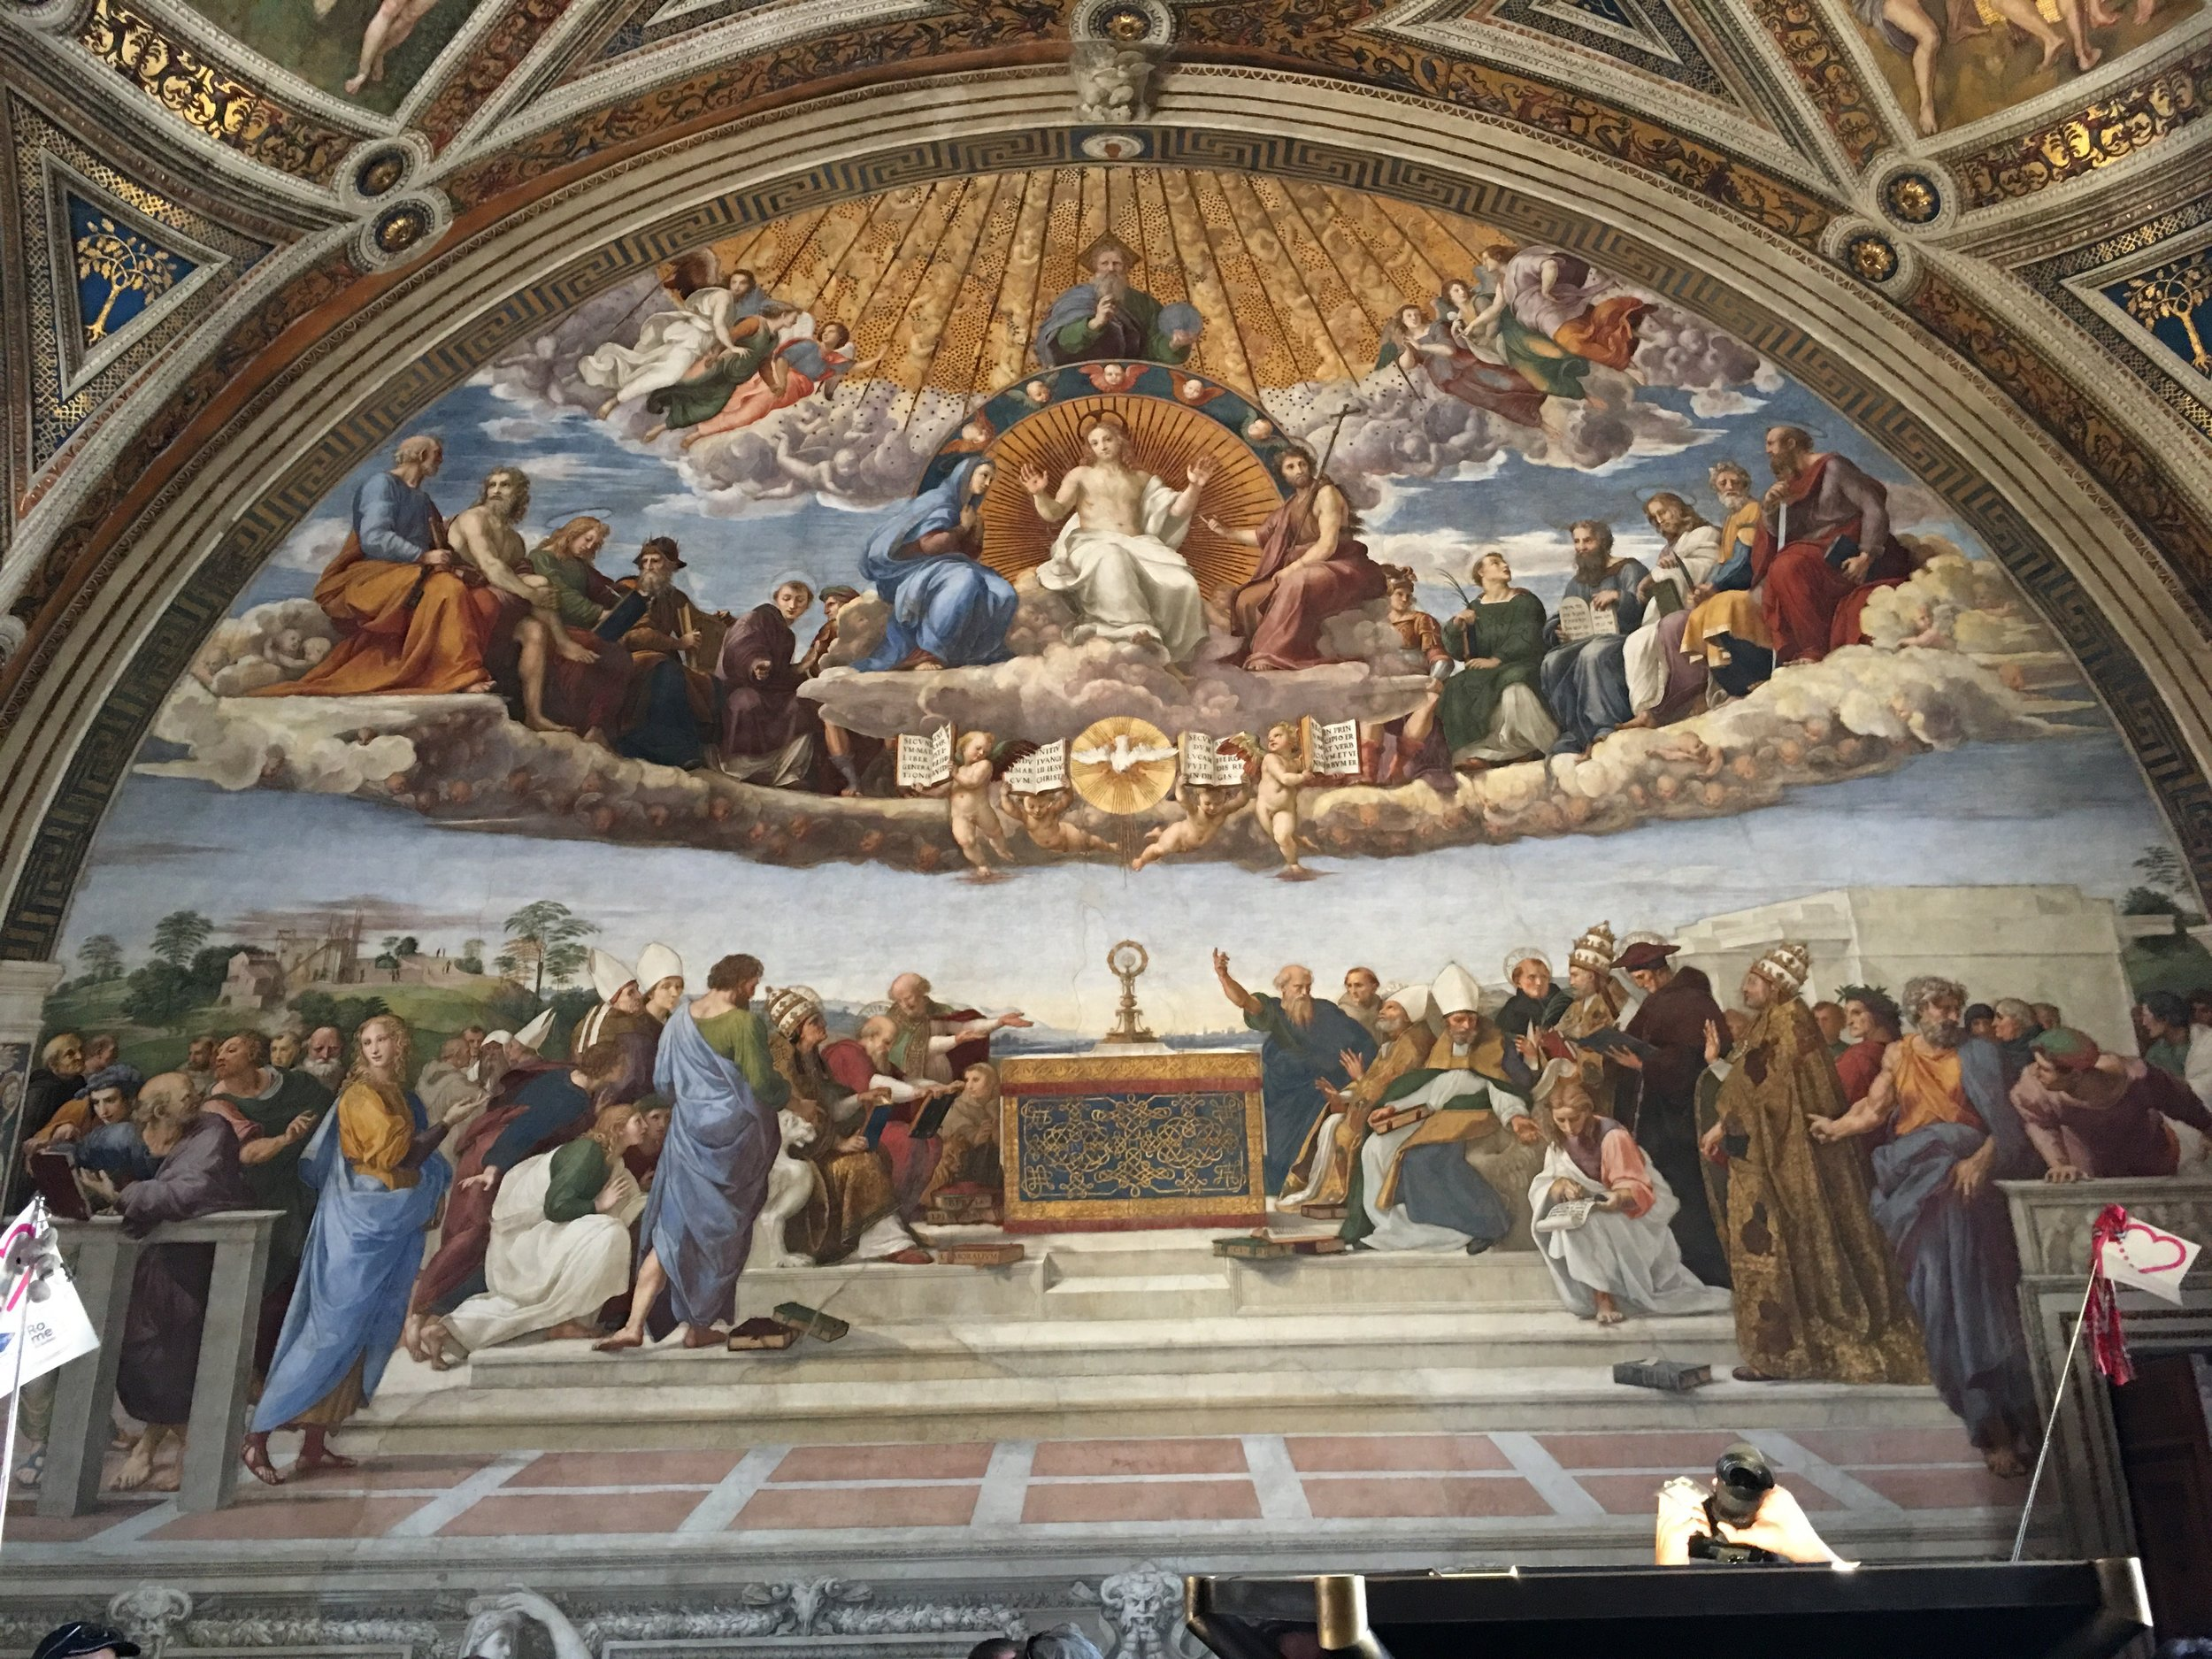 In Raphaels' Disputation of the Holy Sacrament, located in the room Stanza Della Segnatura of Vatican City we see Jesus in the scene depicting both the heavens and earth.  Jesus, bathed in light is located just below the Father God and above the burning light of the Holy Spirit.  Forty days after his resurrection, according to the Gospel of Luke, Jesus ascends into heaven where he takes his place beside the Father God as the advocate for all of mankind.